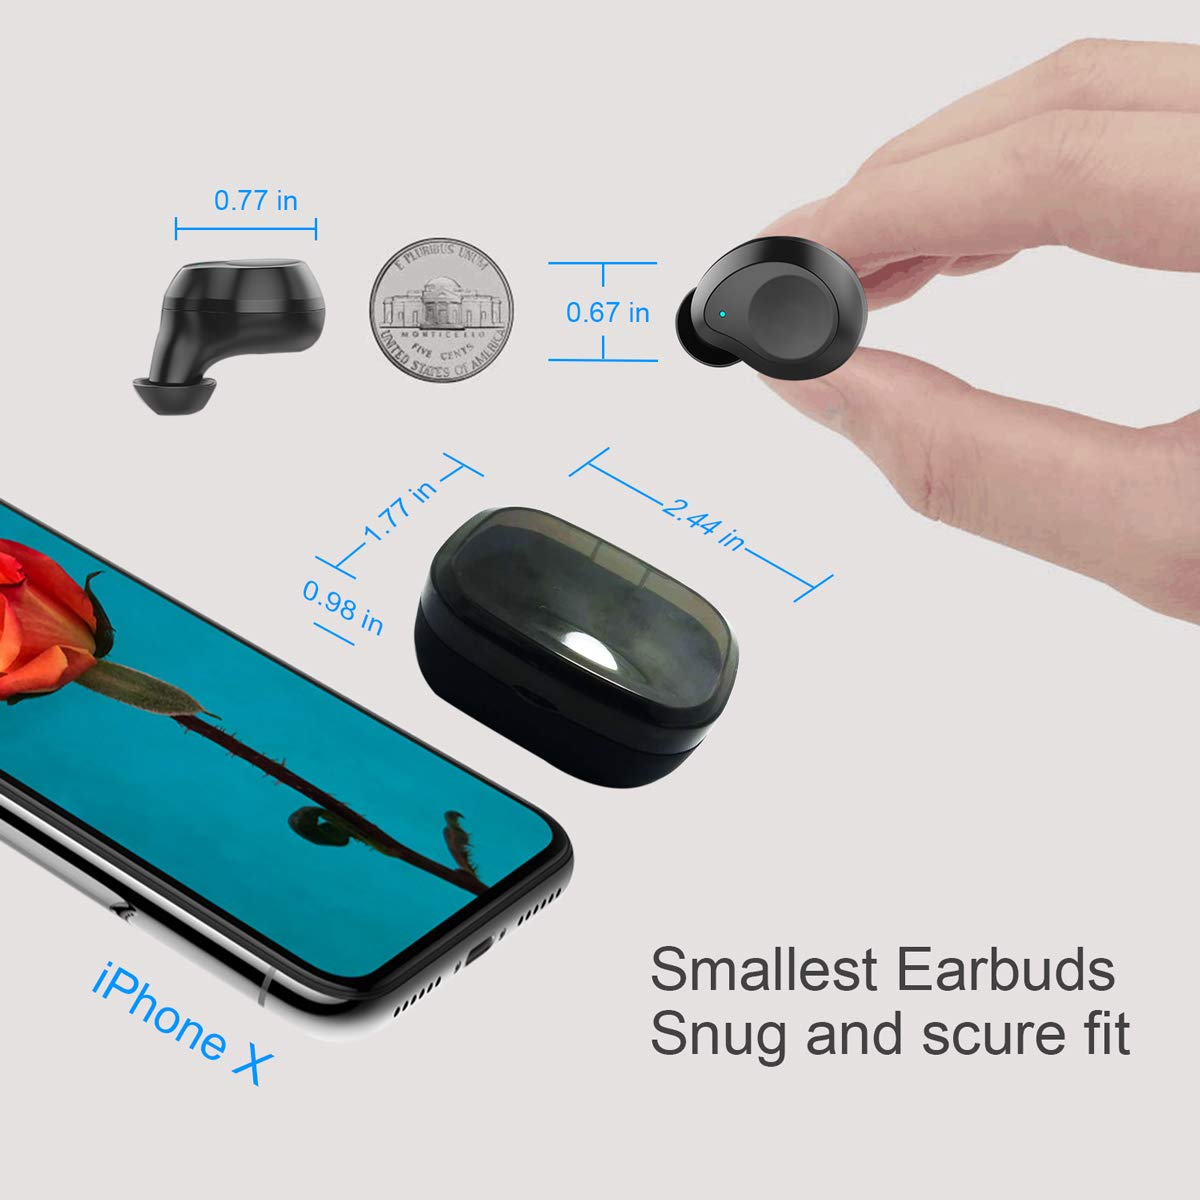 Wireless Earbuds Chof TWS-HB908 Bluetooth 5.0 True Wireless Headphones Invisible Touch Control with Mic for iPhone and Android Smart Phones